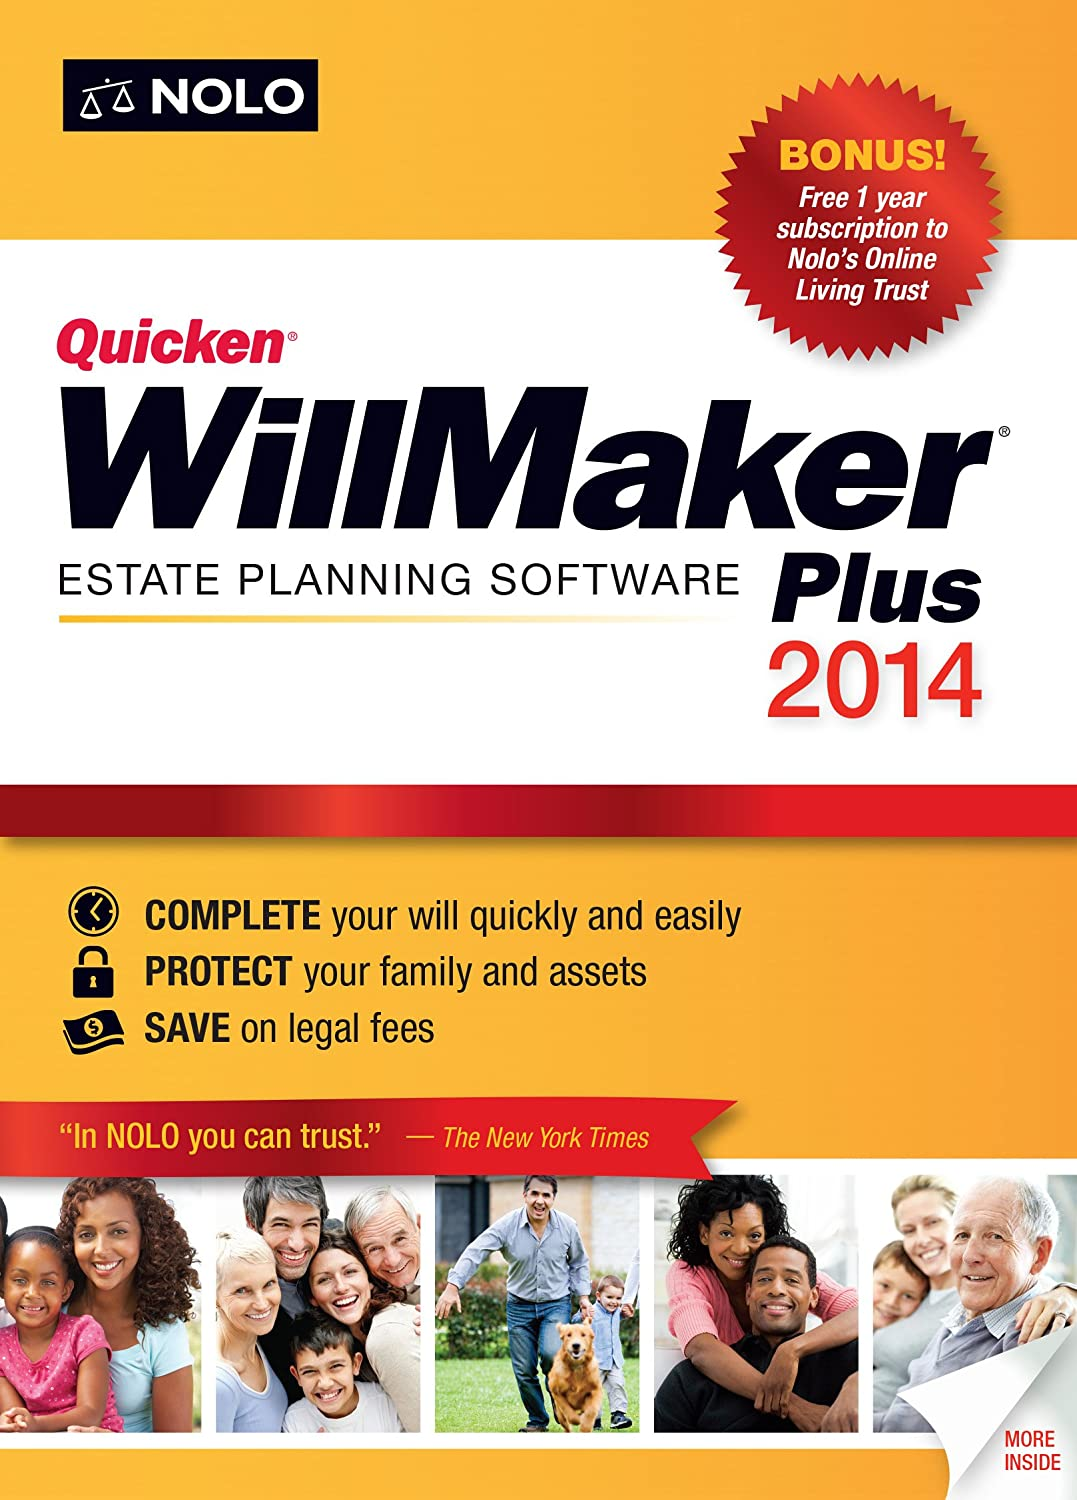 Turbotax matlab and simulink student version r2013a buy price with turbotax quicken willmaker plus 2014 download buy price with turbotaxturbotaxdiscount coupon promotion code fandeluxe Gallery